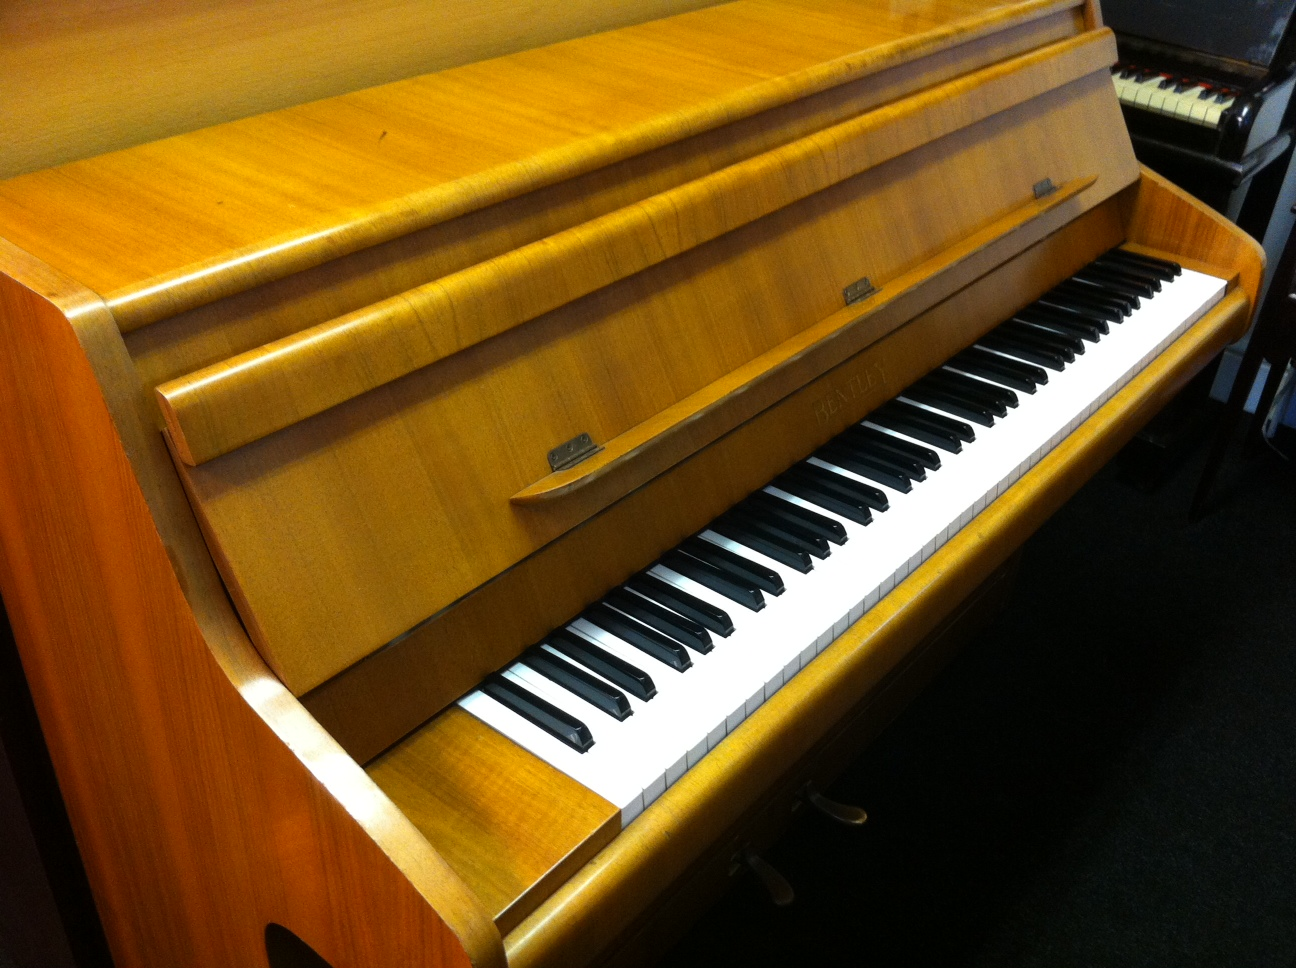 Bentley Piano Medium Walnut